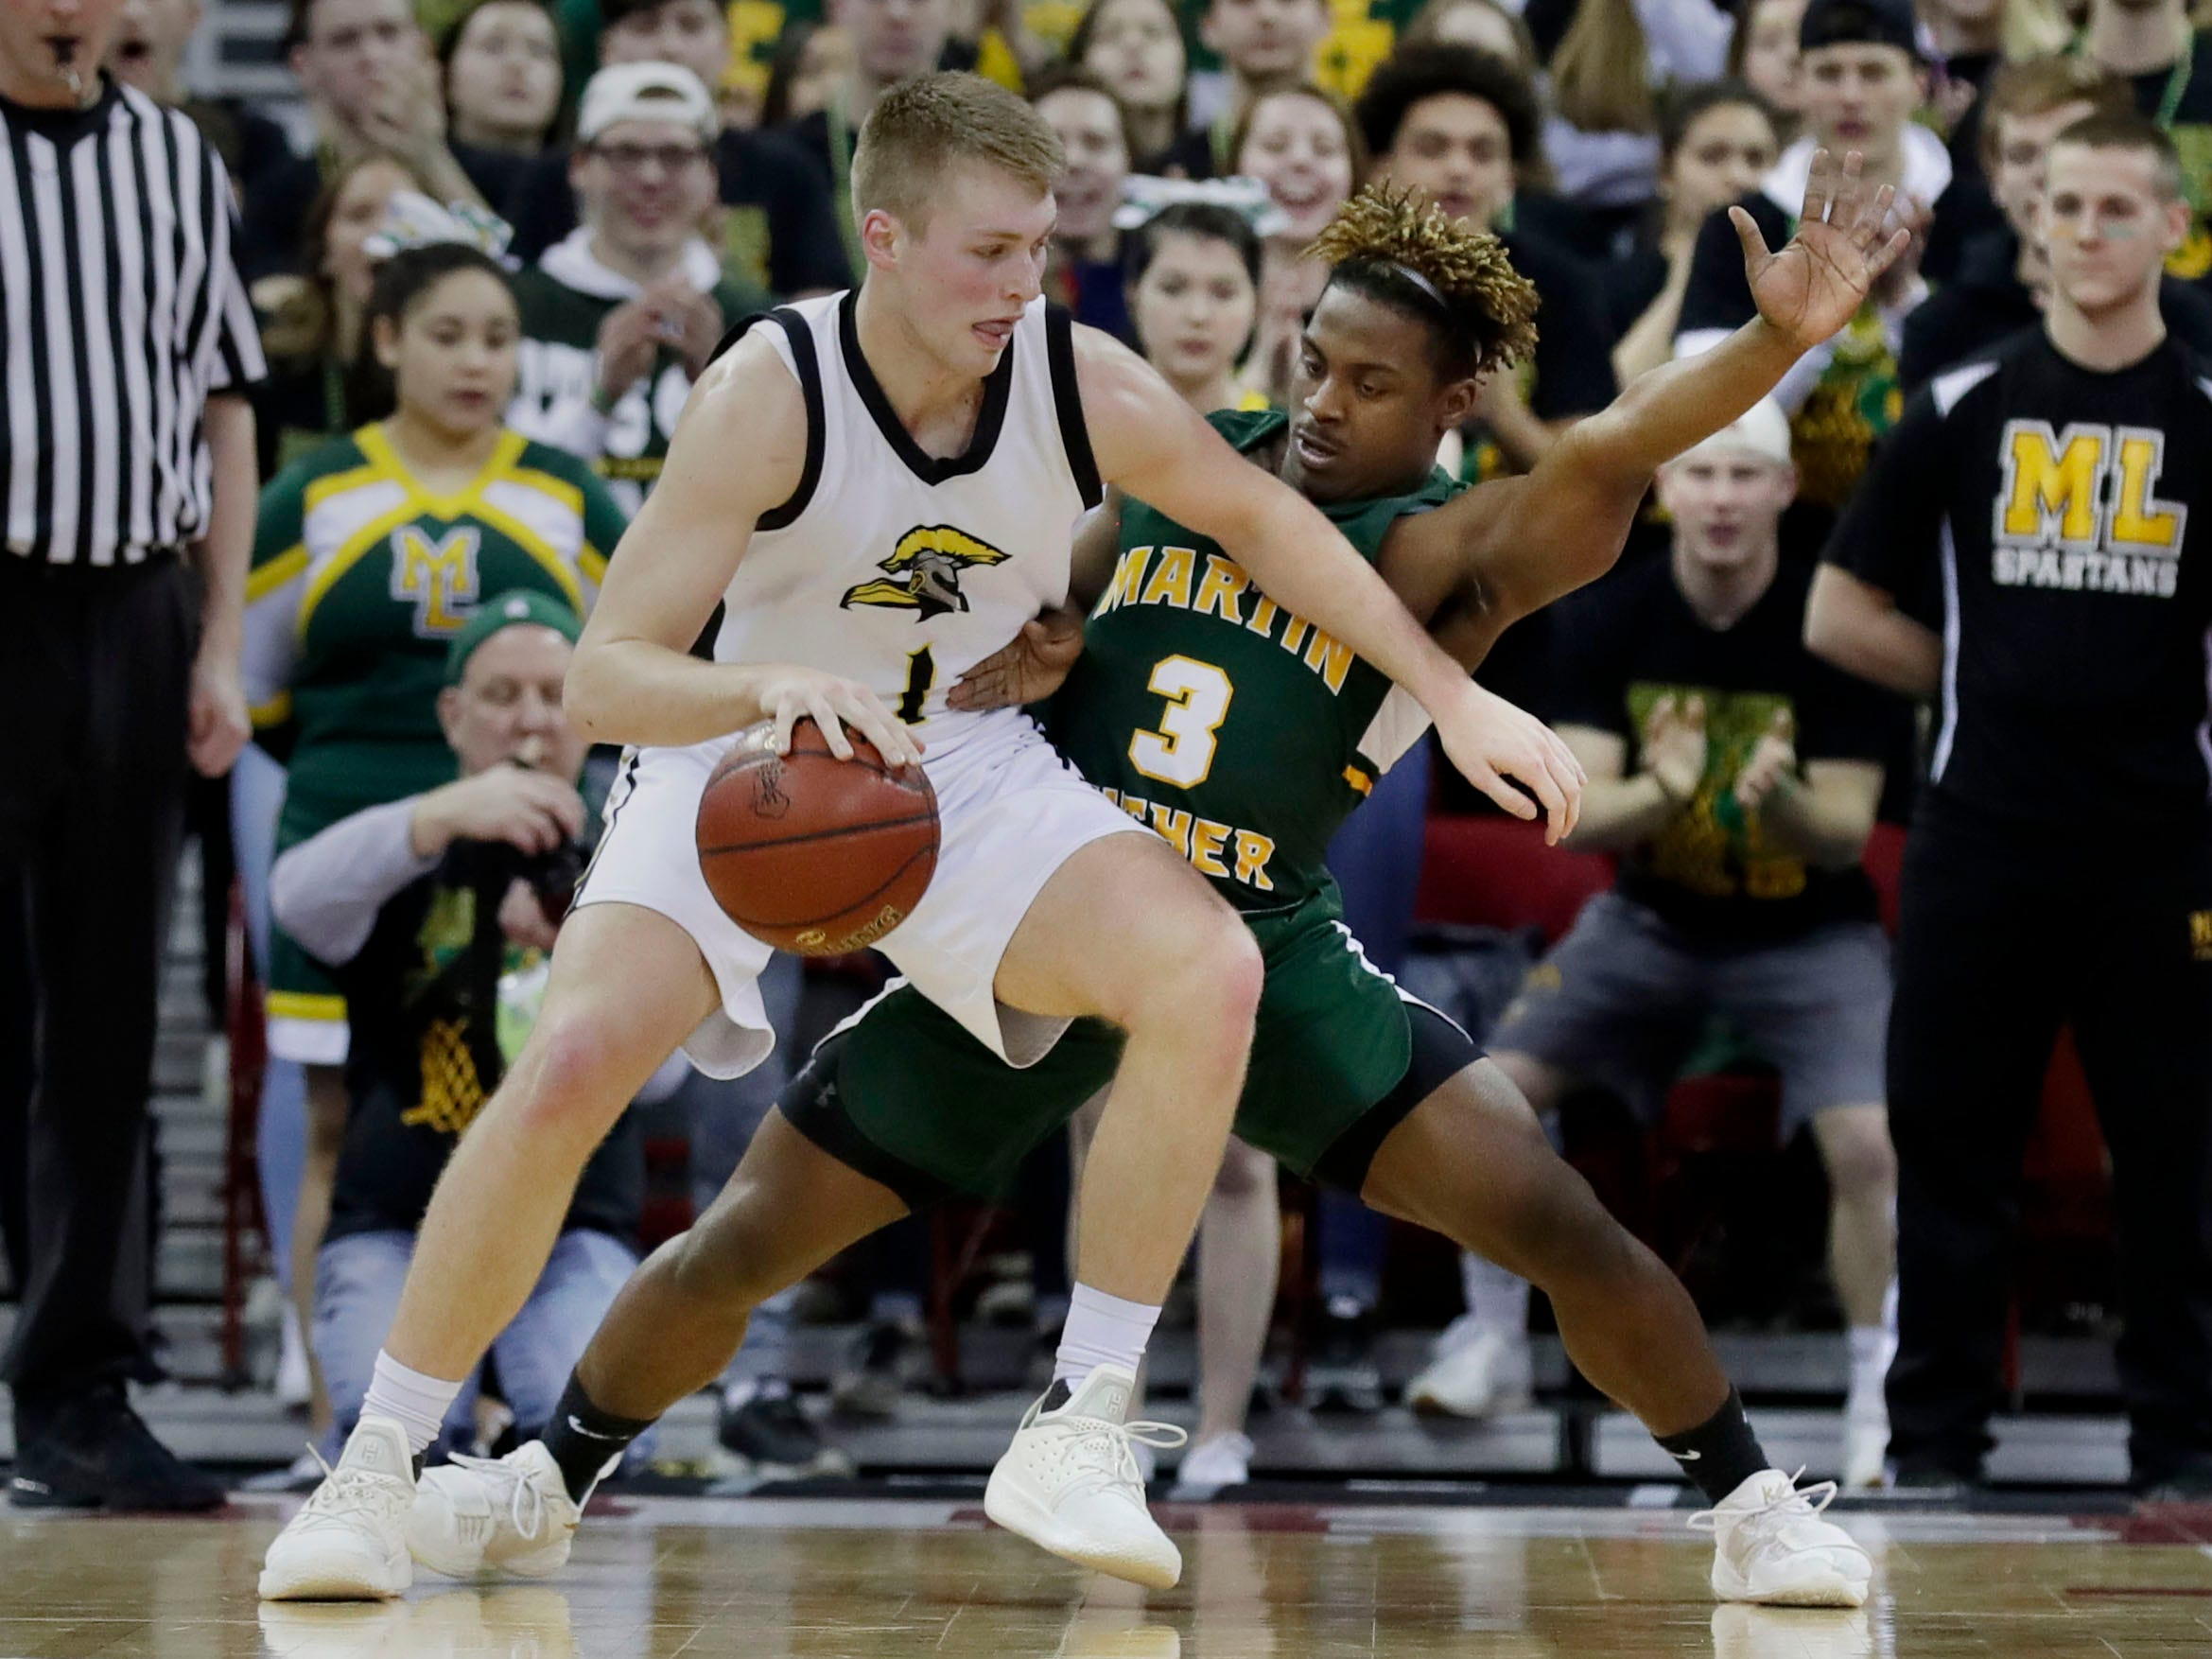 Waupun's Marcus Domask, who was named the Mr. Basketball  by the Wisconsin Basketball Coaches Association on Saturday, works against Martin Luther's Darios Crawley-Reid during the  Division 3 championship game.